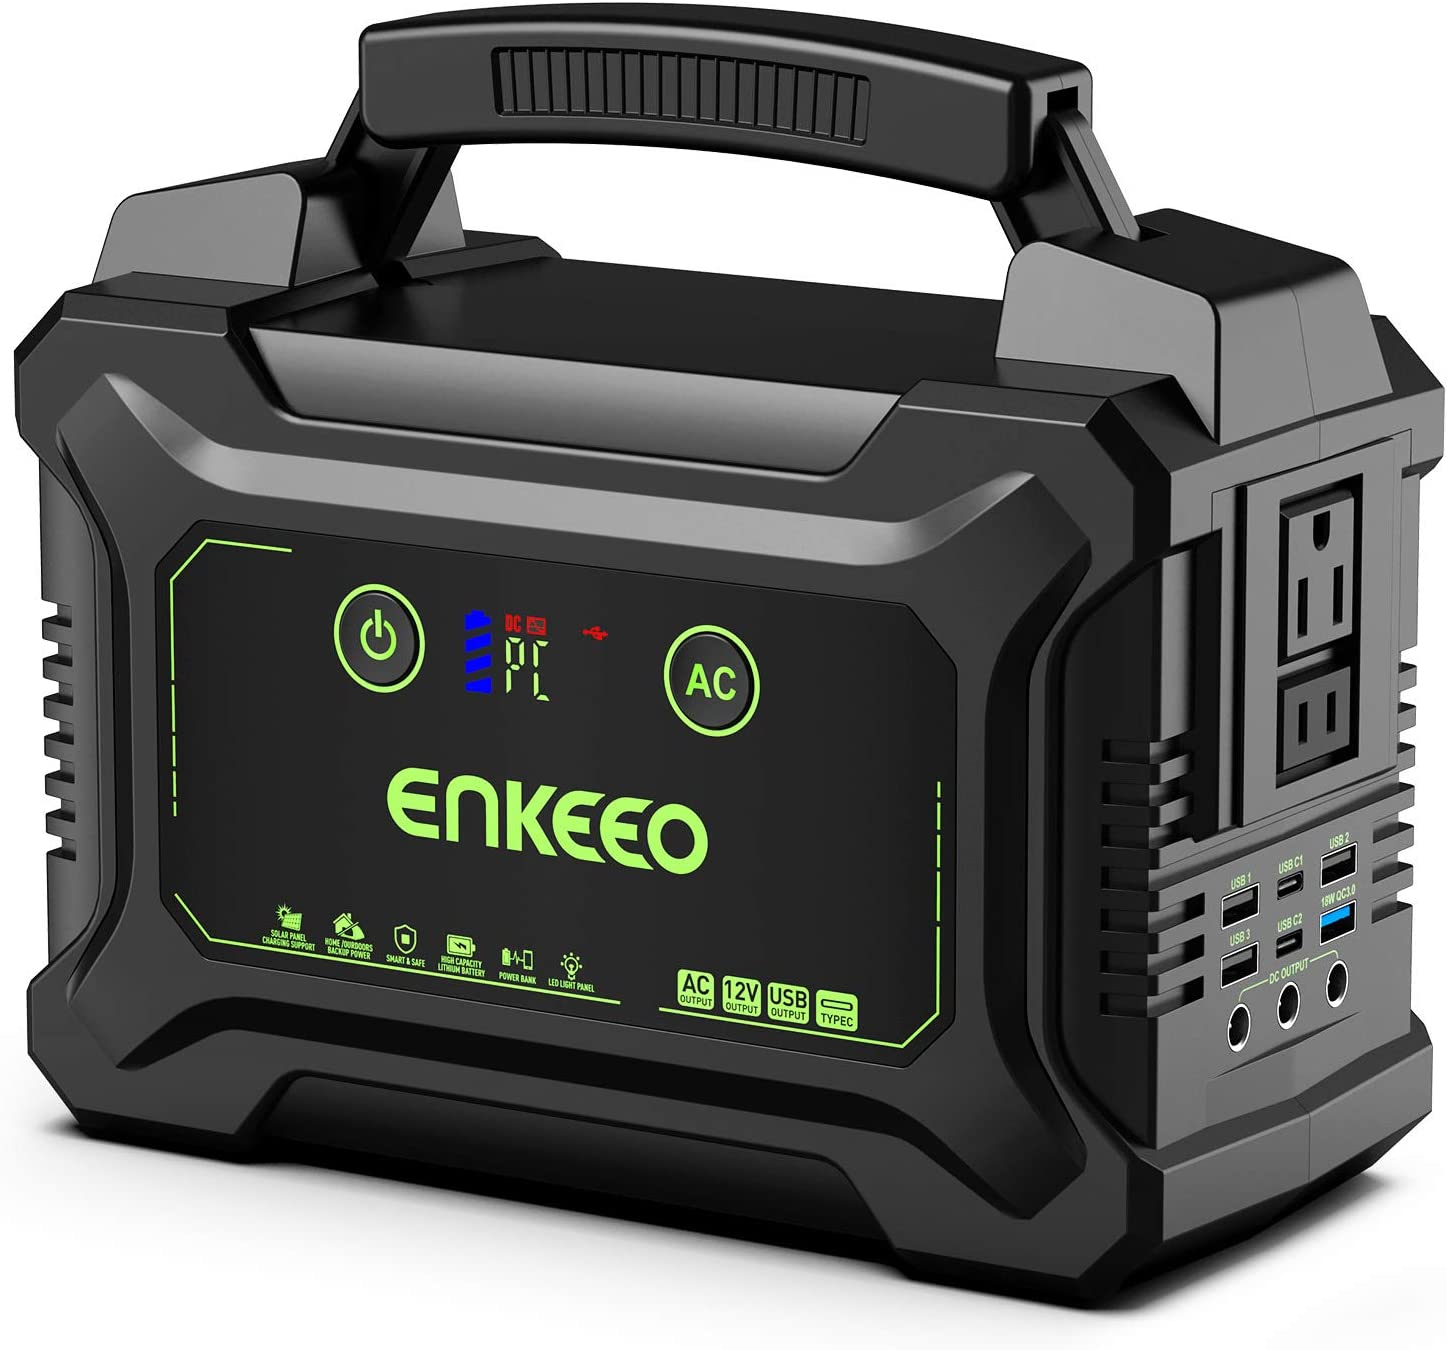 ENKEEO 222Wh Portable Power Station with Rechargeable Lithium-ion Battery, Power Generator with 110V 200W AC Outlet, 15V 3A Output, Easy Read LCD Display and LED Light for Camping and Emergency Use